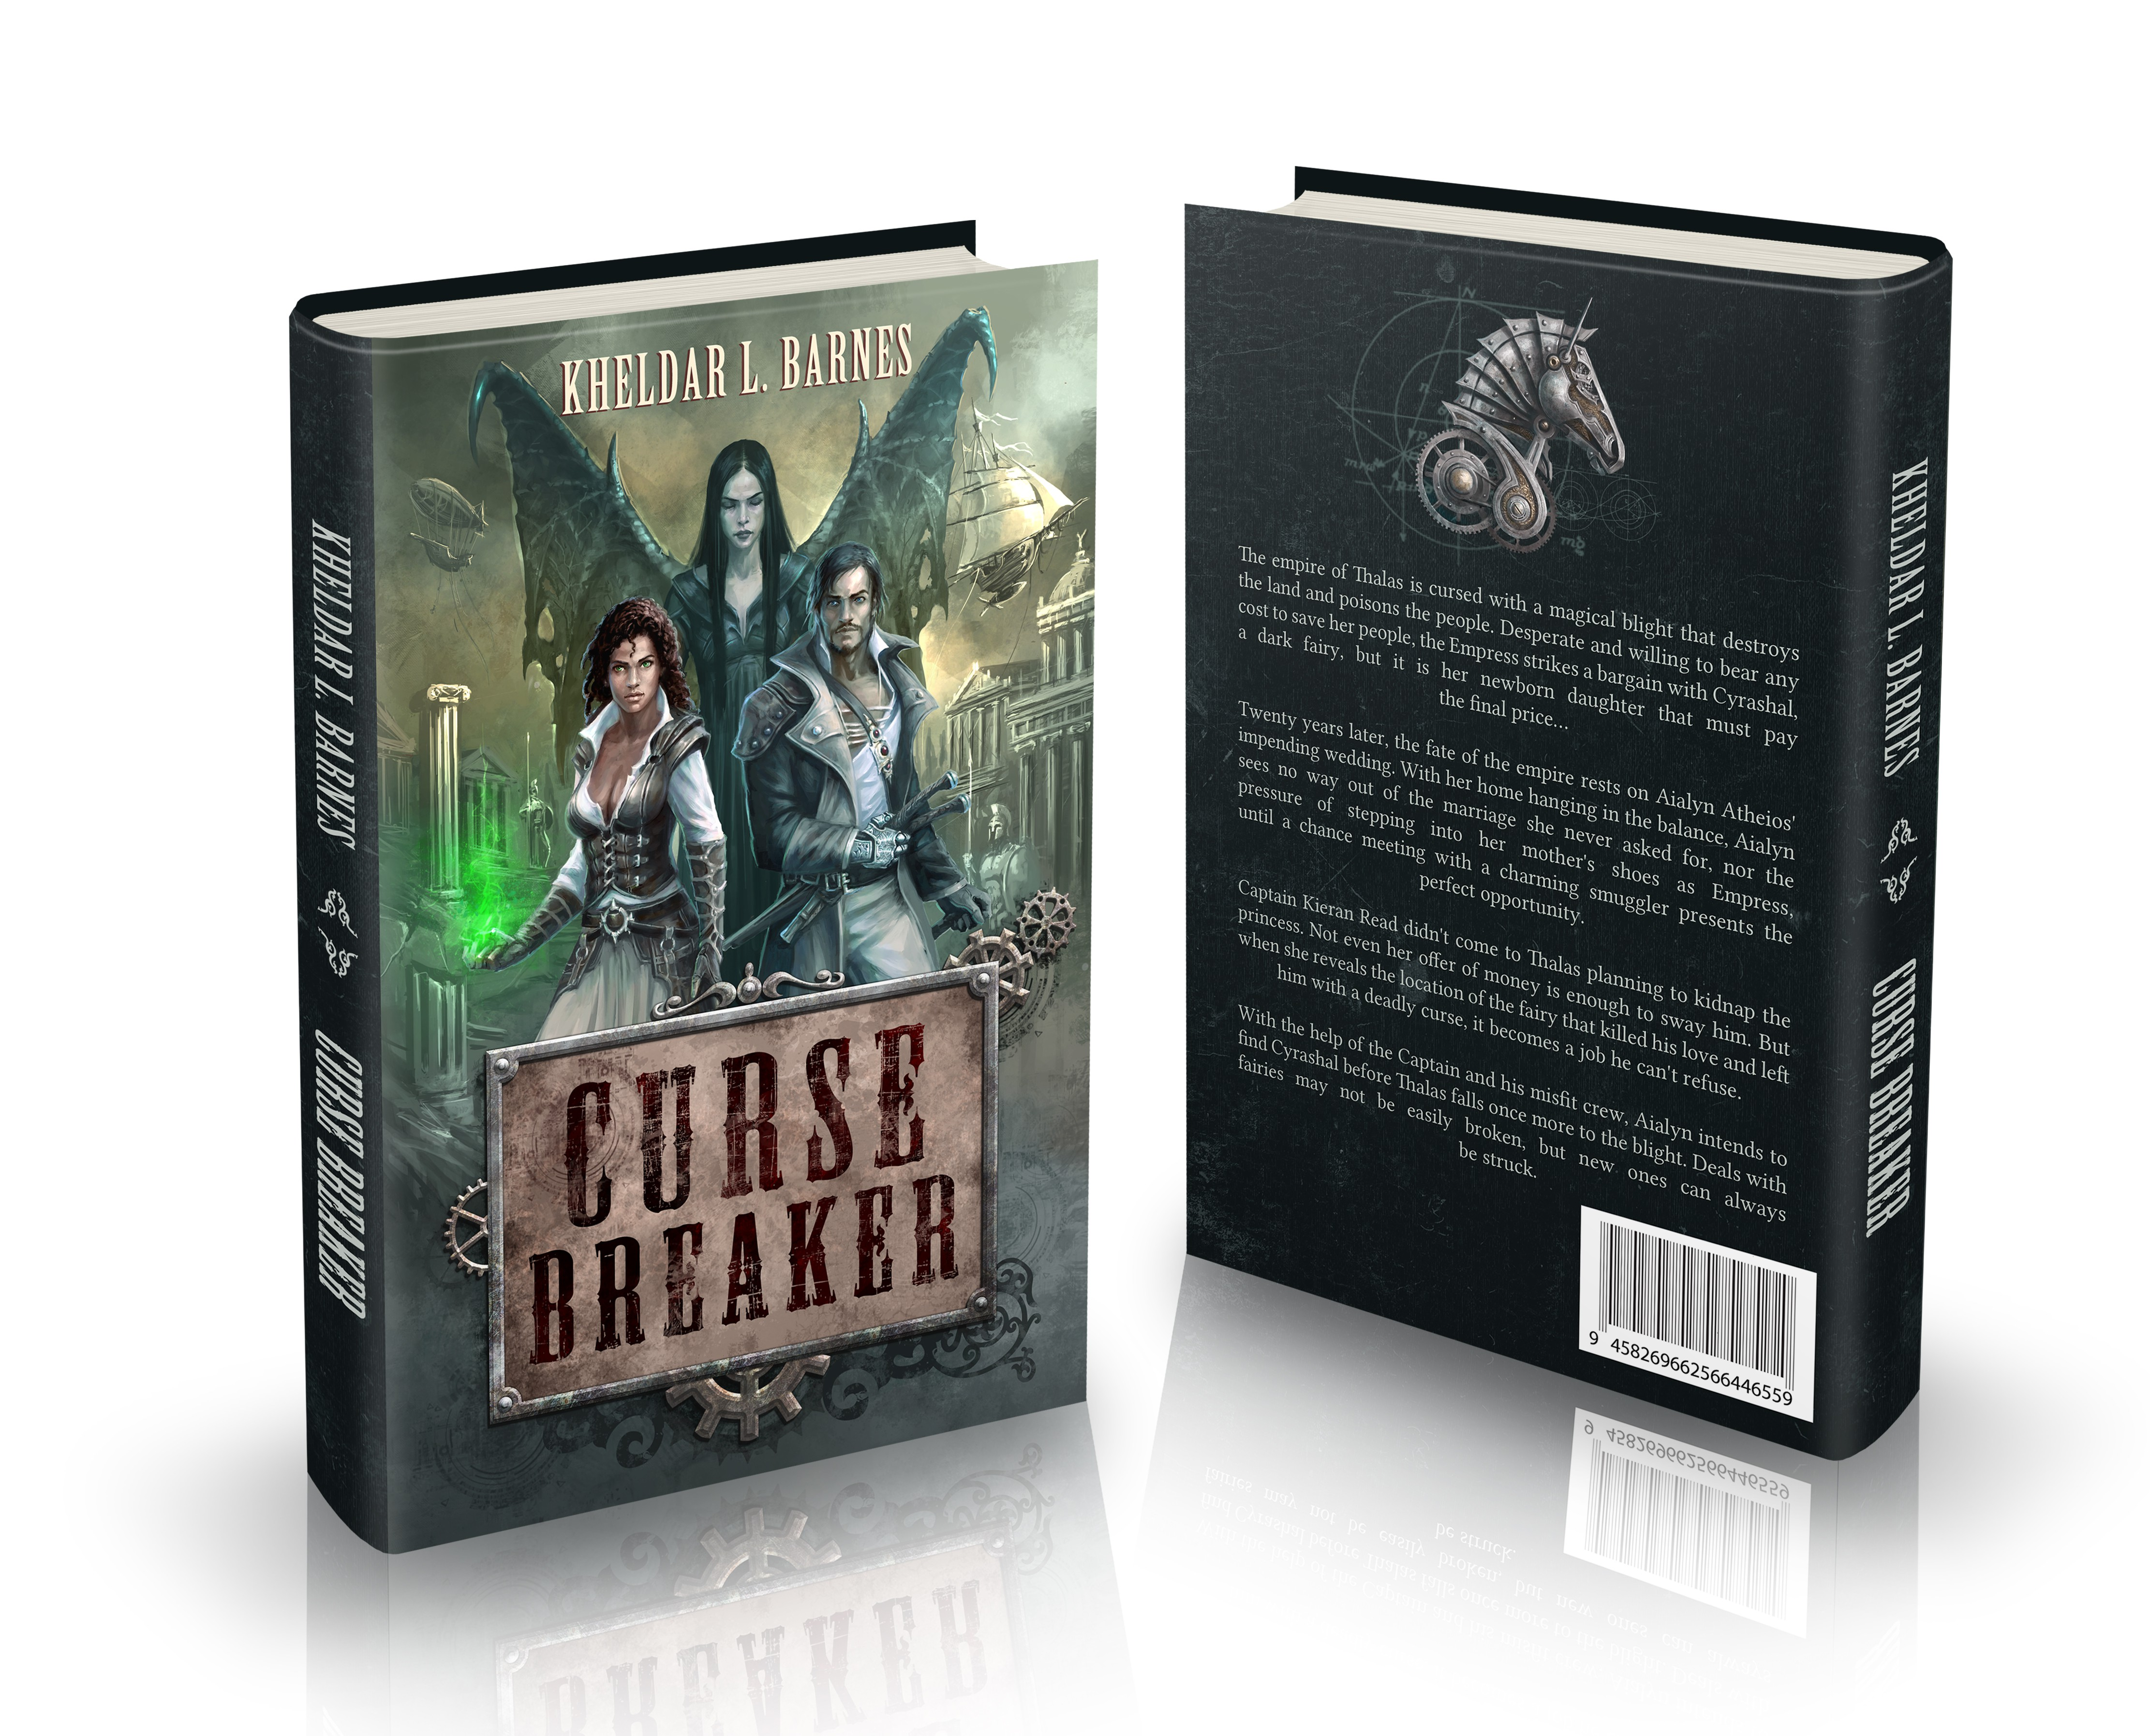 Book jacket for CURSE BREAKER, book 1 of a medieval fantasy/steampunk duology